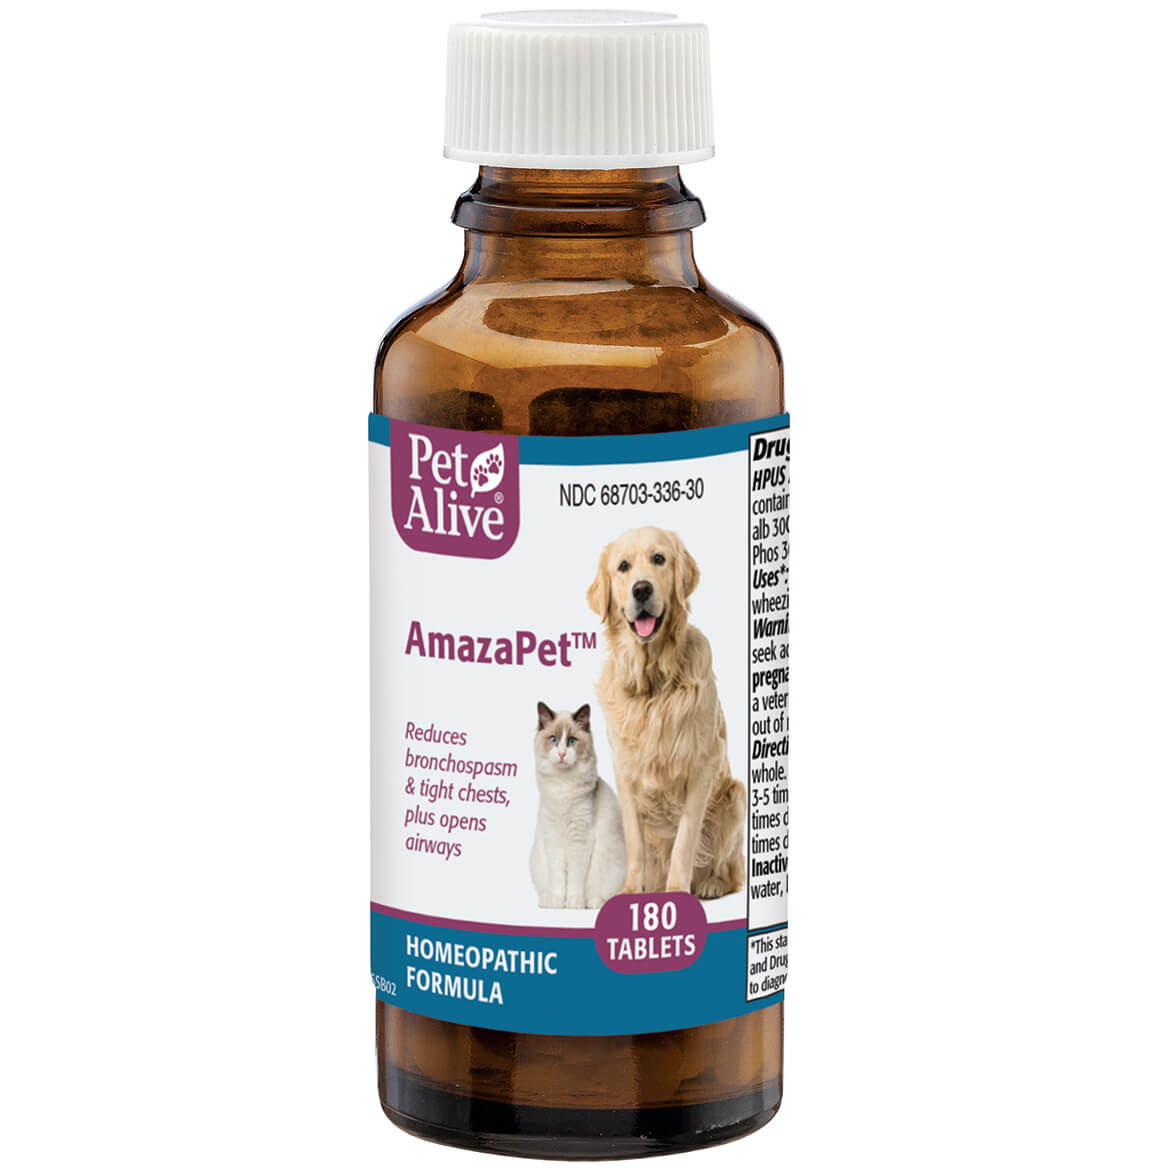 Pet Alive AmazaPet - Pet Supplements - Pet Tabs - Miles